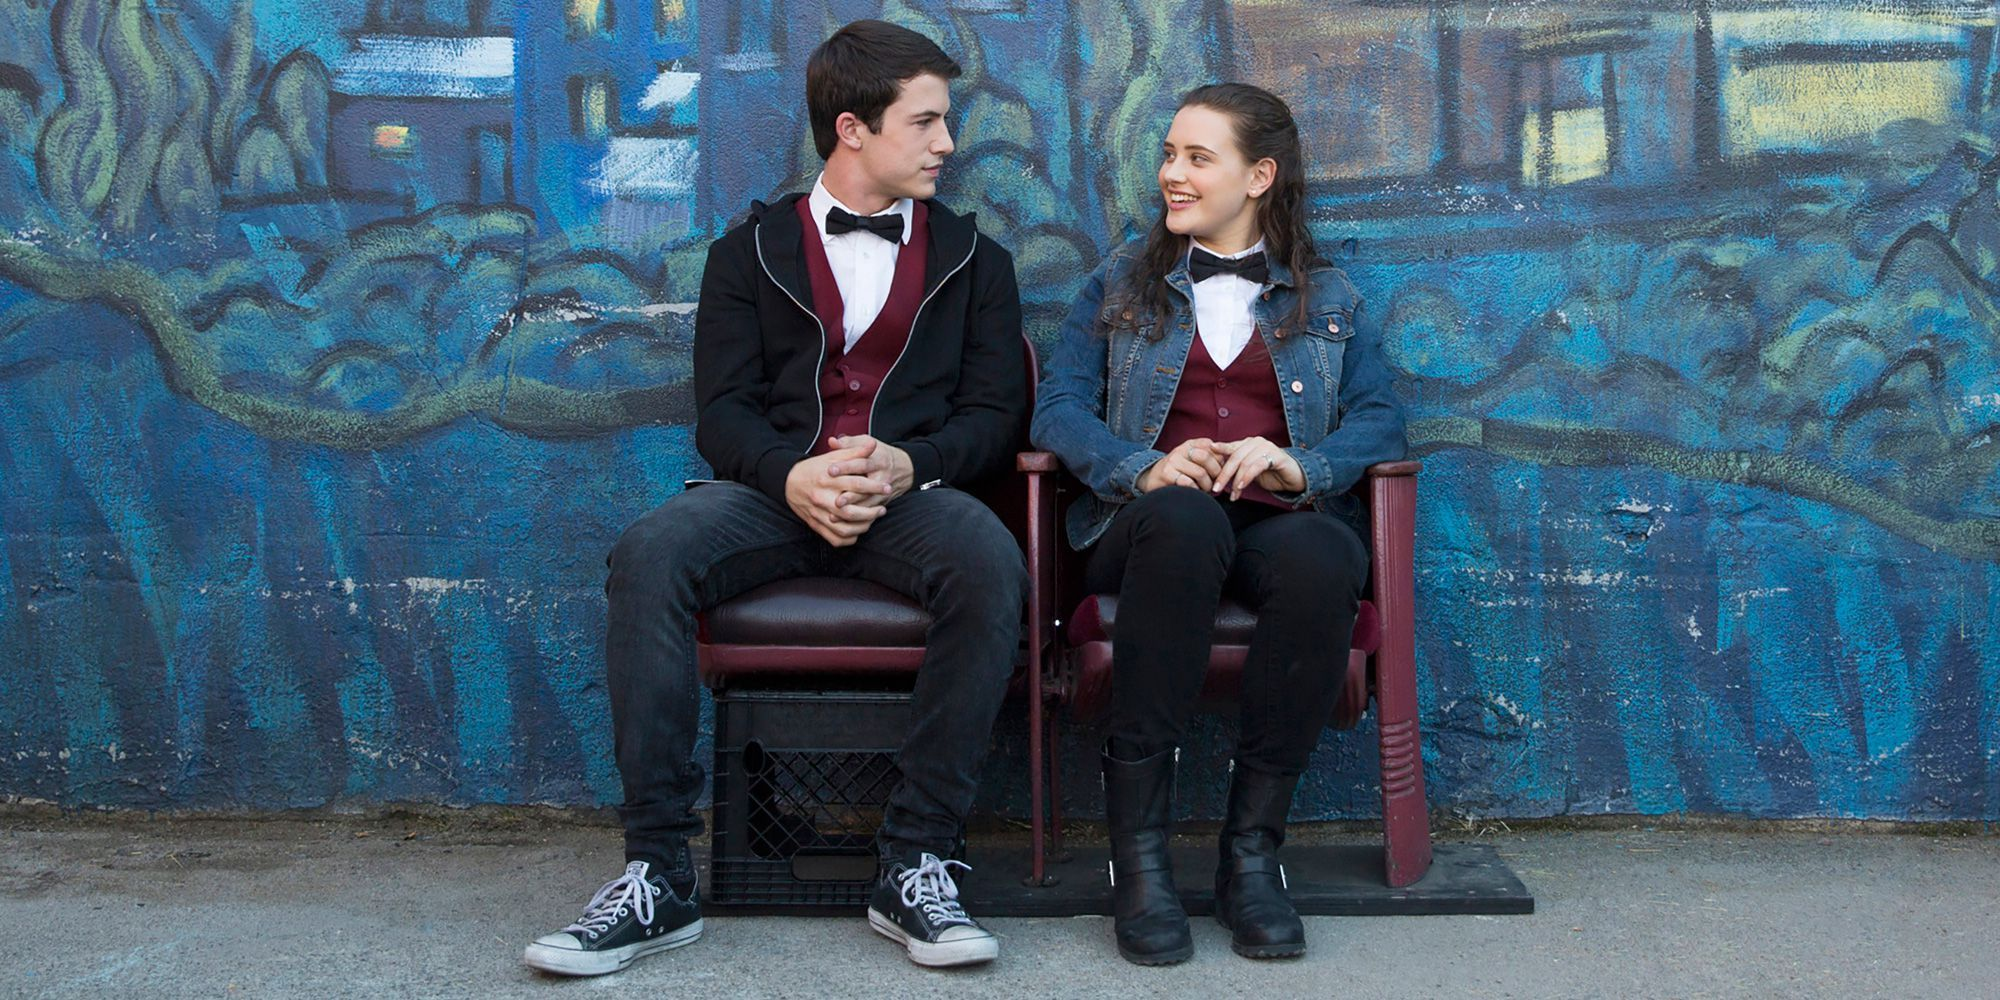 13 Reasons Why Book Vs Tv Show Changes In 13rw Netflix Show